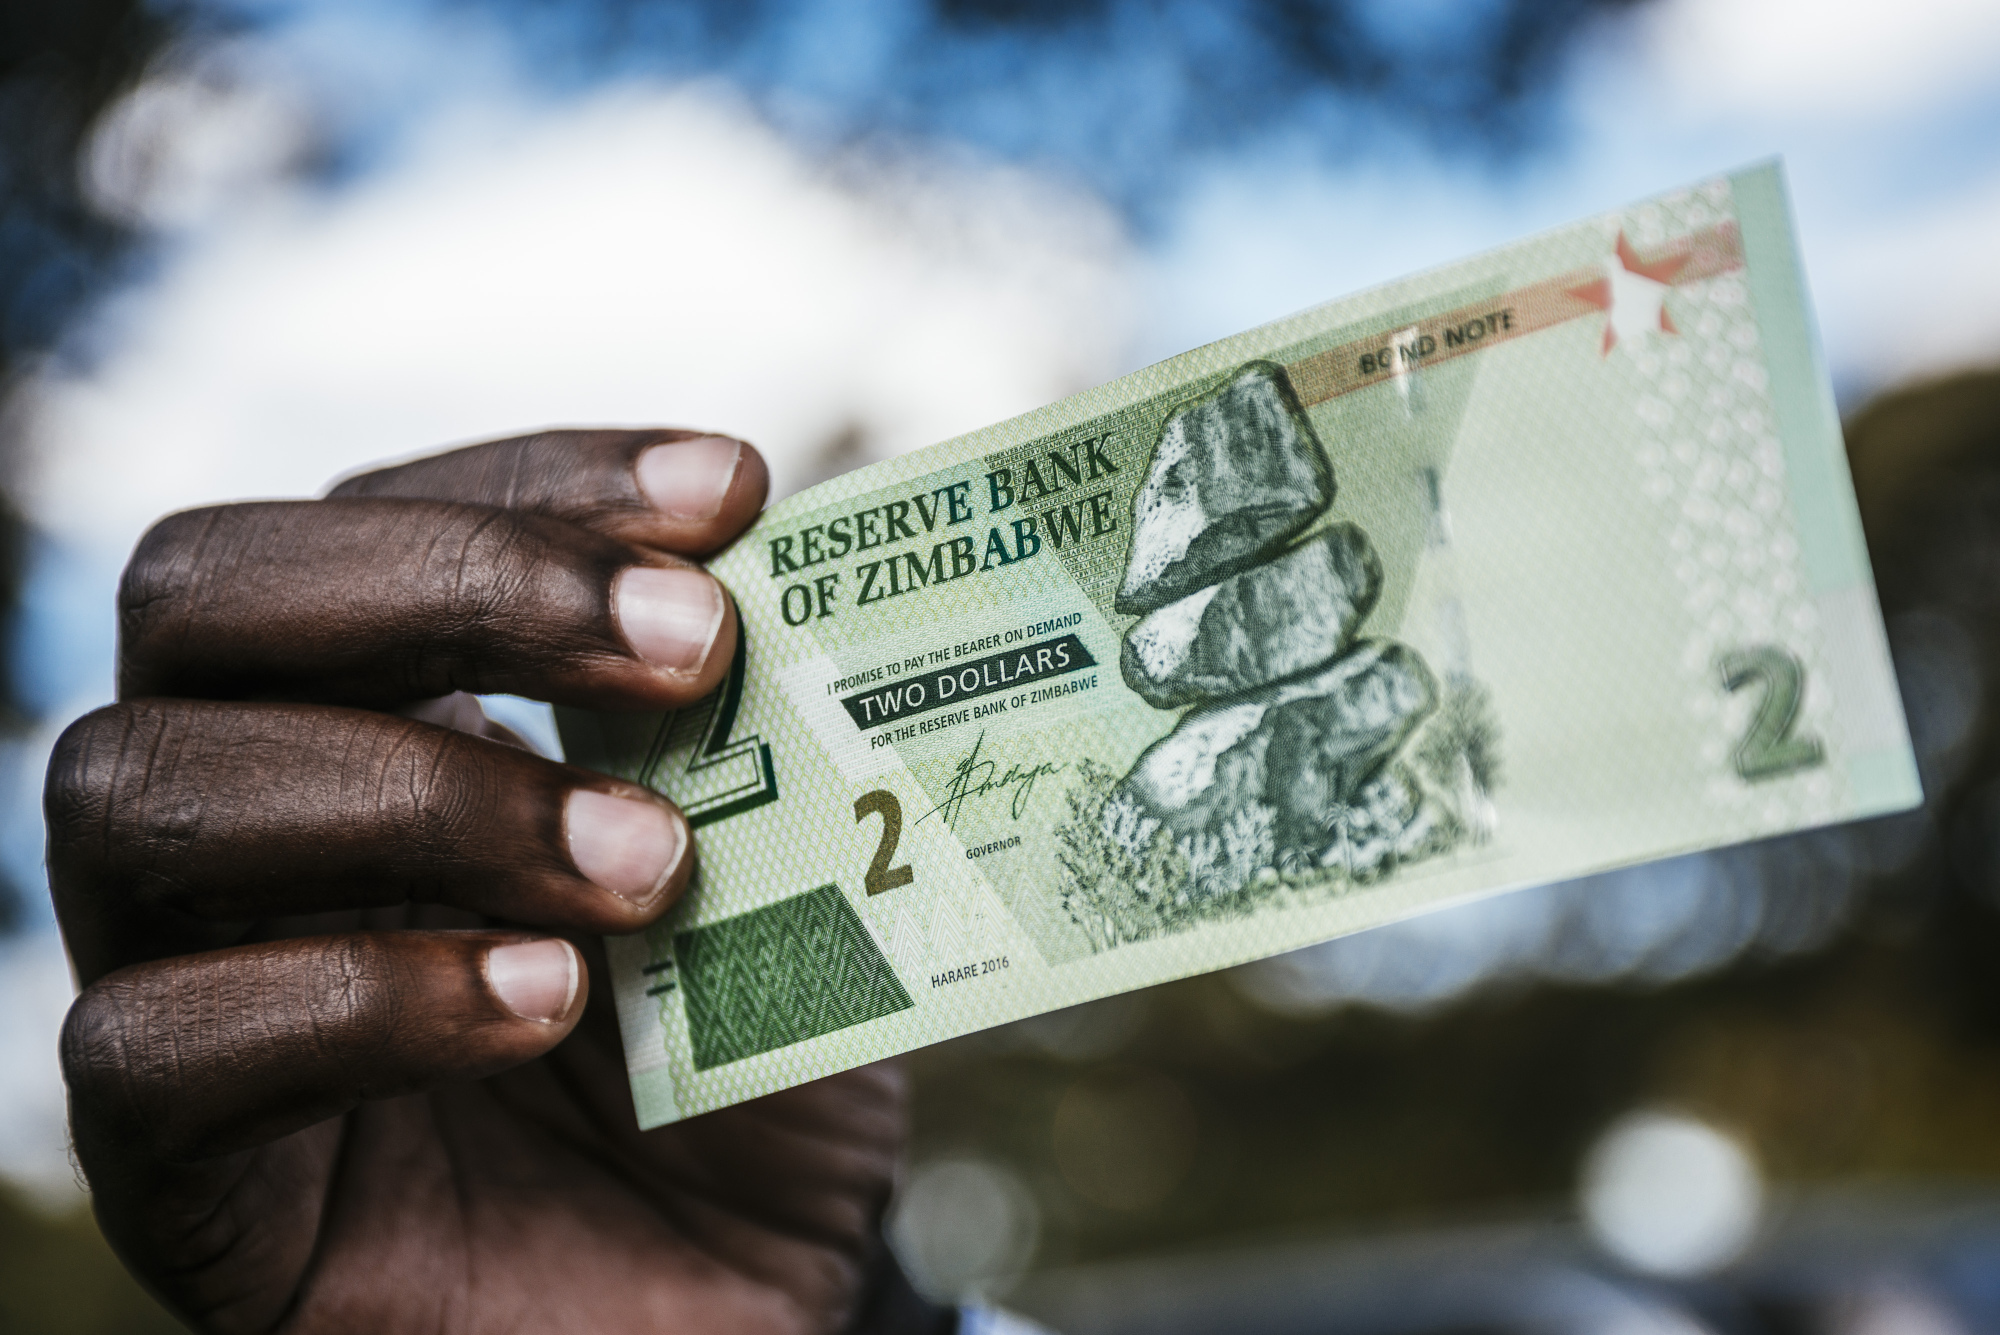 bloomberg.com - Antony Sguazzin - Zimbabwe to Supply Interbank Forex Market With $500 Million